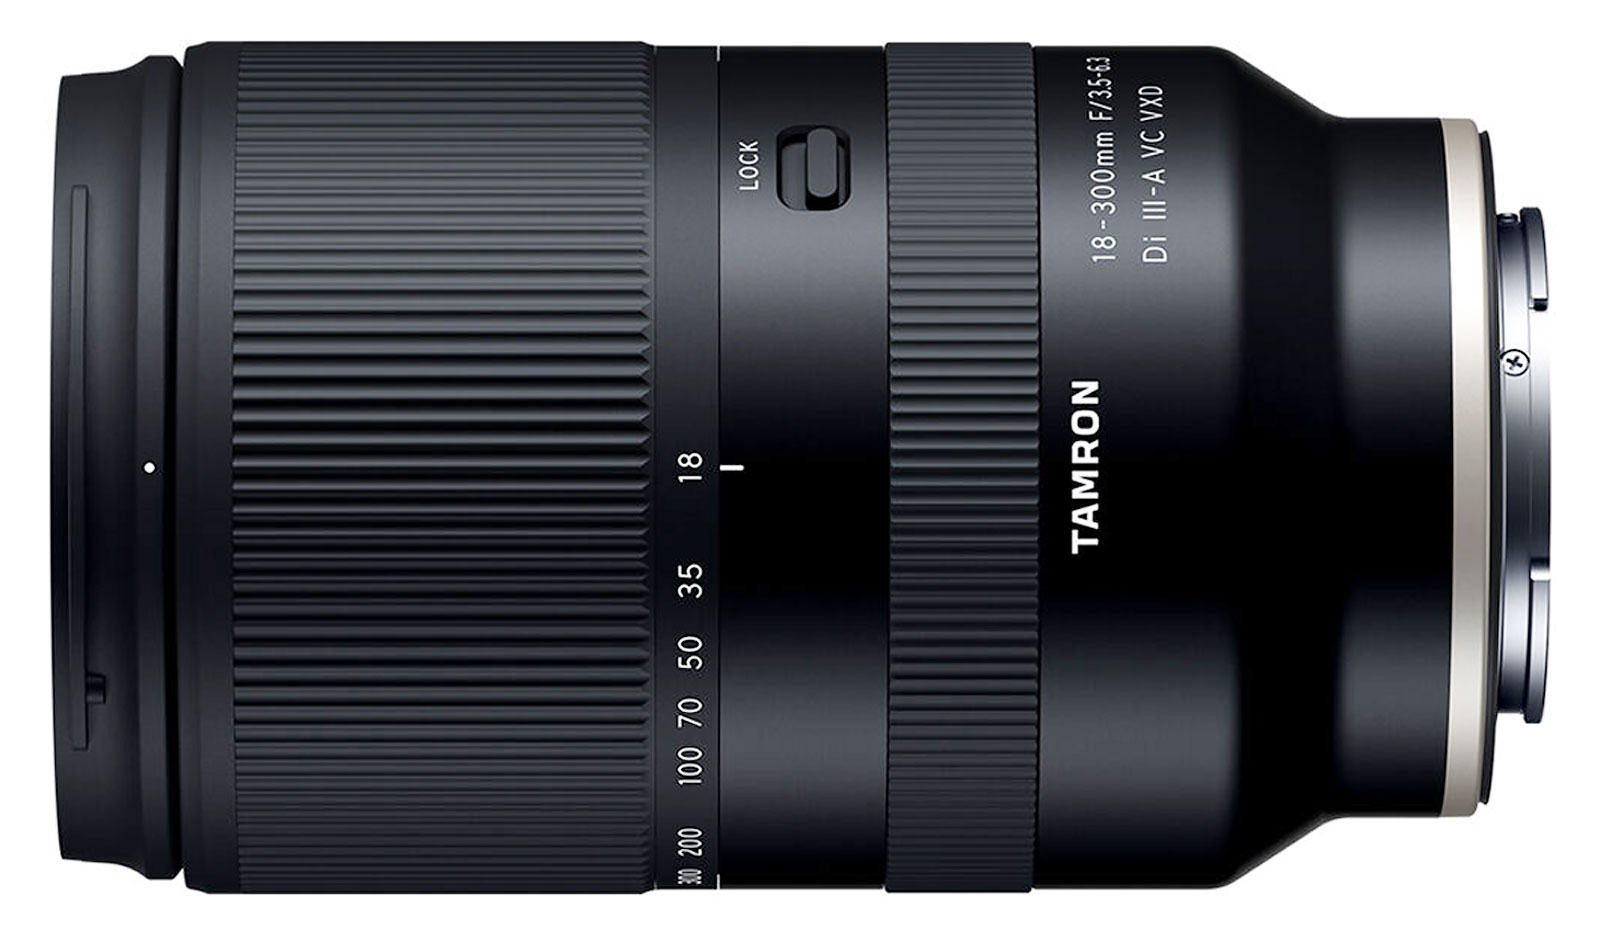 Tamron 18-300mm f/3.5-6.3 Di III-A VC VXD Superzoom Lens for APS-C Sony E-Mount cameras